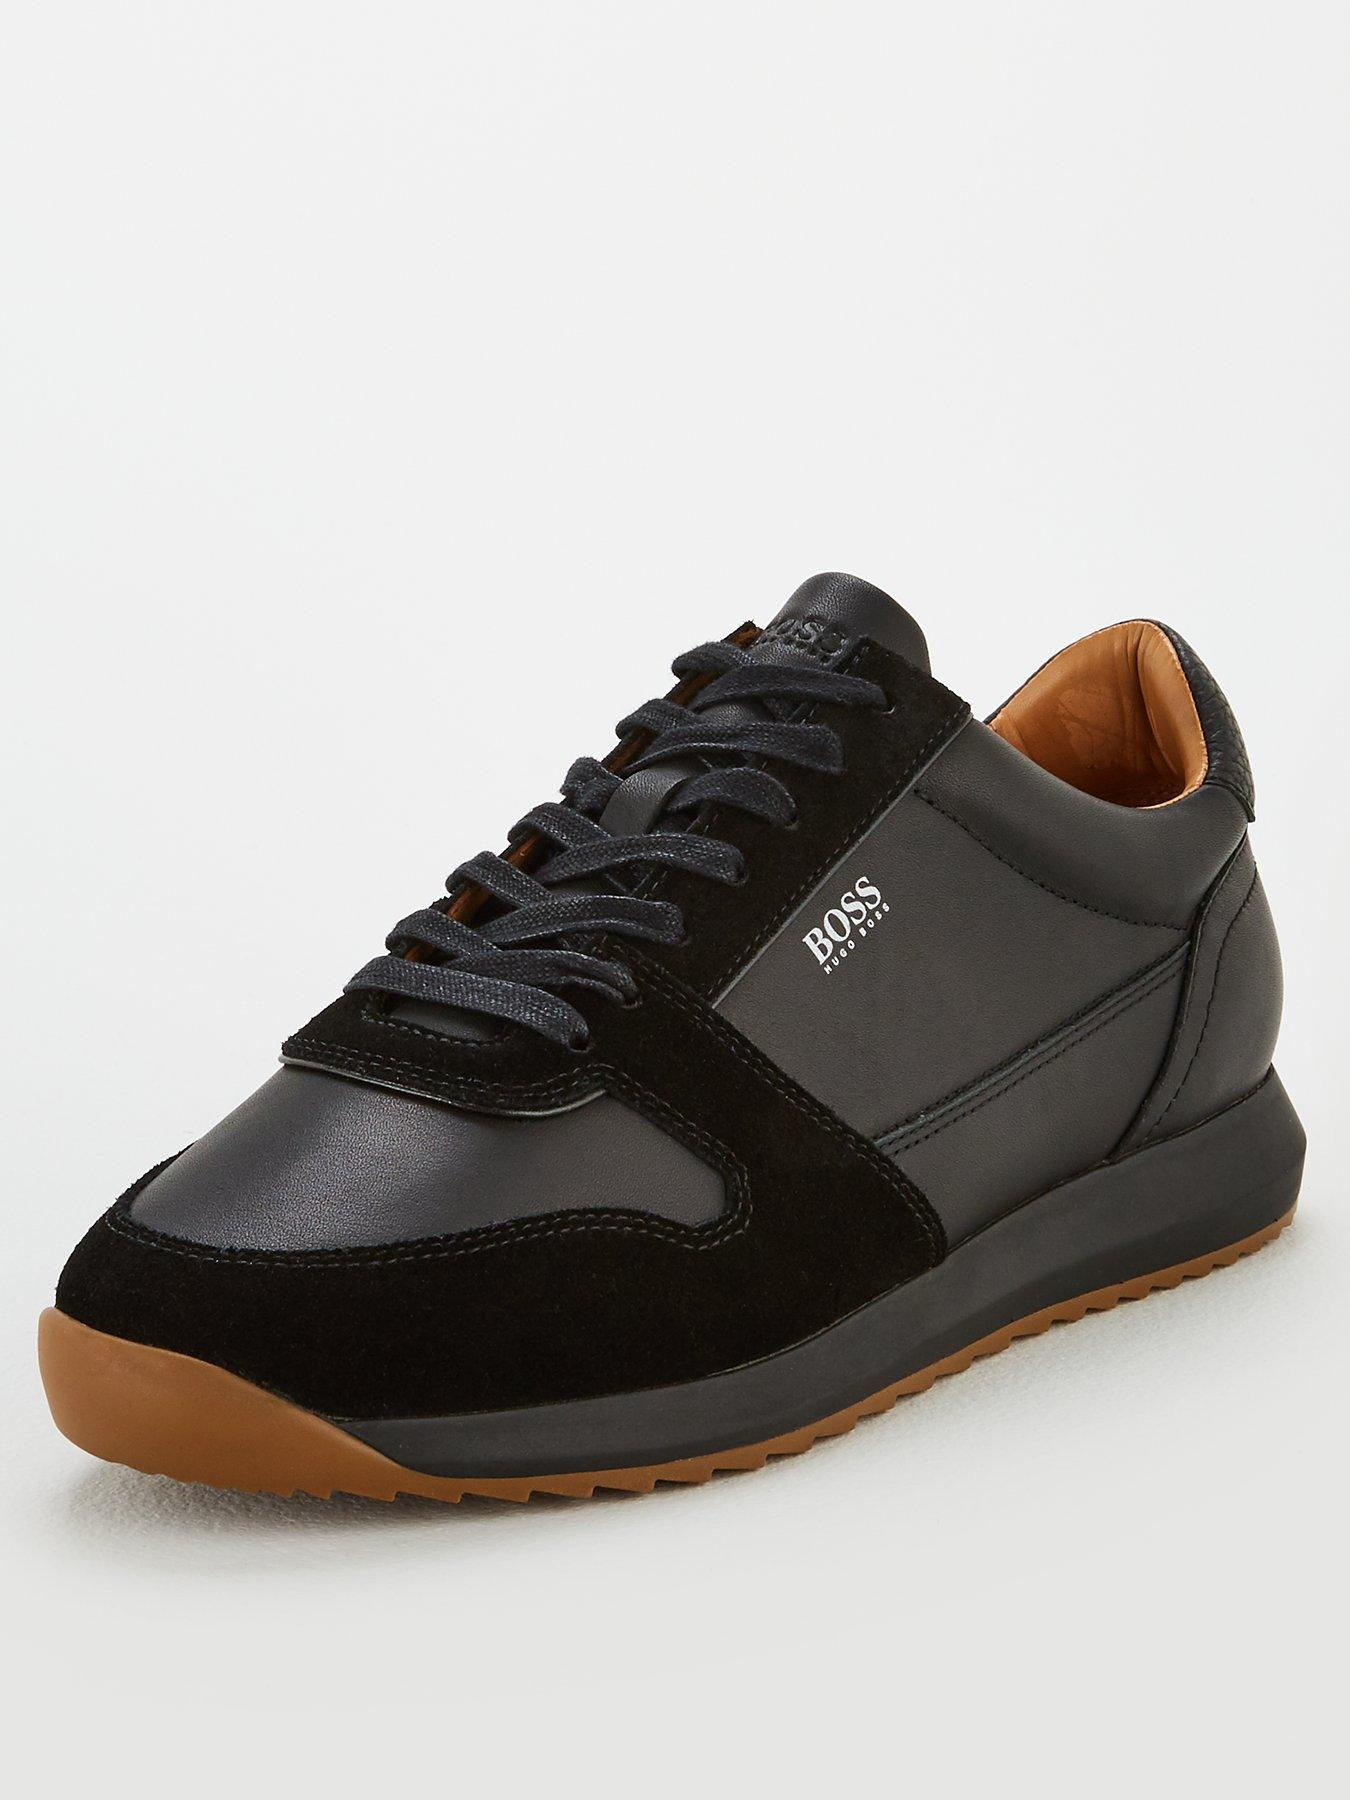 Mens Sports Shoes | Mens Running Shoes | Very.co.uk